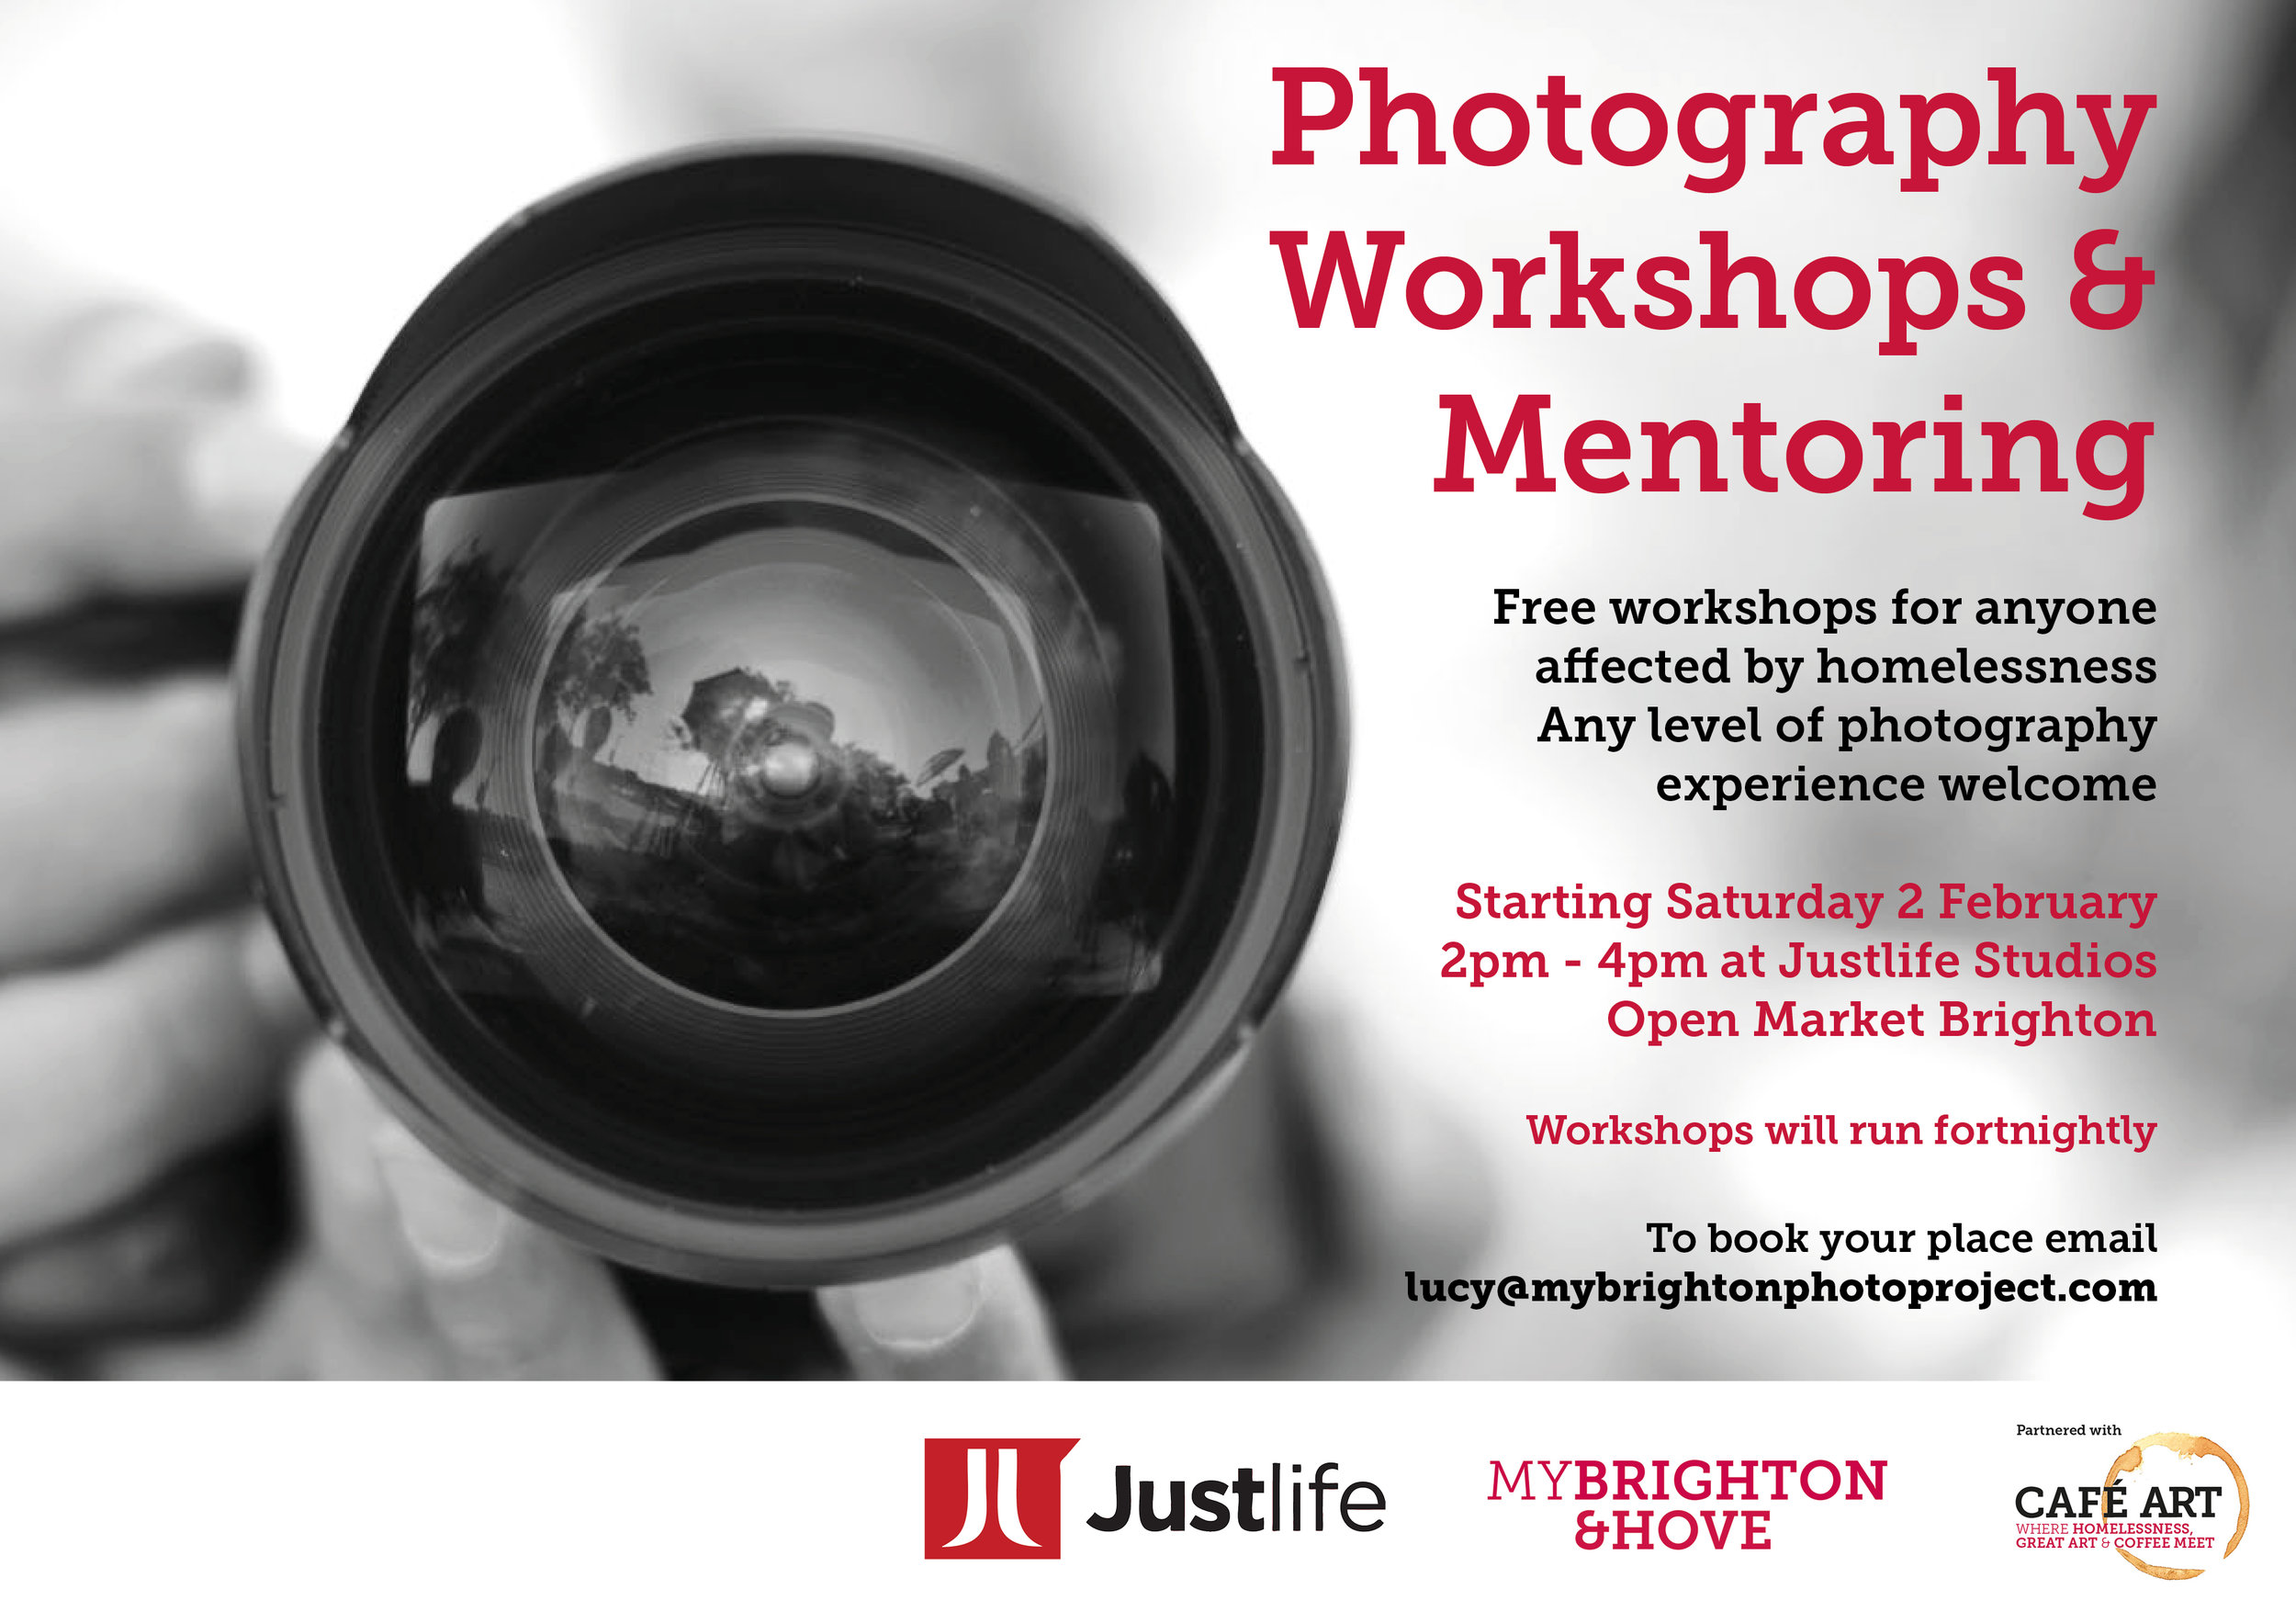 We are about to begin Photography Mentoring and Workshops open to anyone who has been affected by homelessness.  First session is  2-4pm Saturday Feb 2 at Justlife Studios , Open Market. We have a group of professional photographers volunteering their time to run workshops and support participants, so its a fantastic opportunity for some creative advice and direction.  Every level is welcome, from beginner to experienced photographer.  Initially we are working towards showing work as part of Brighton Fringe in May at One Church Brighton. The sessions are being held at Justlife Creative Studios and are supported by Justlife. Do  get in touch  if you are interested in coming along.